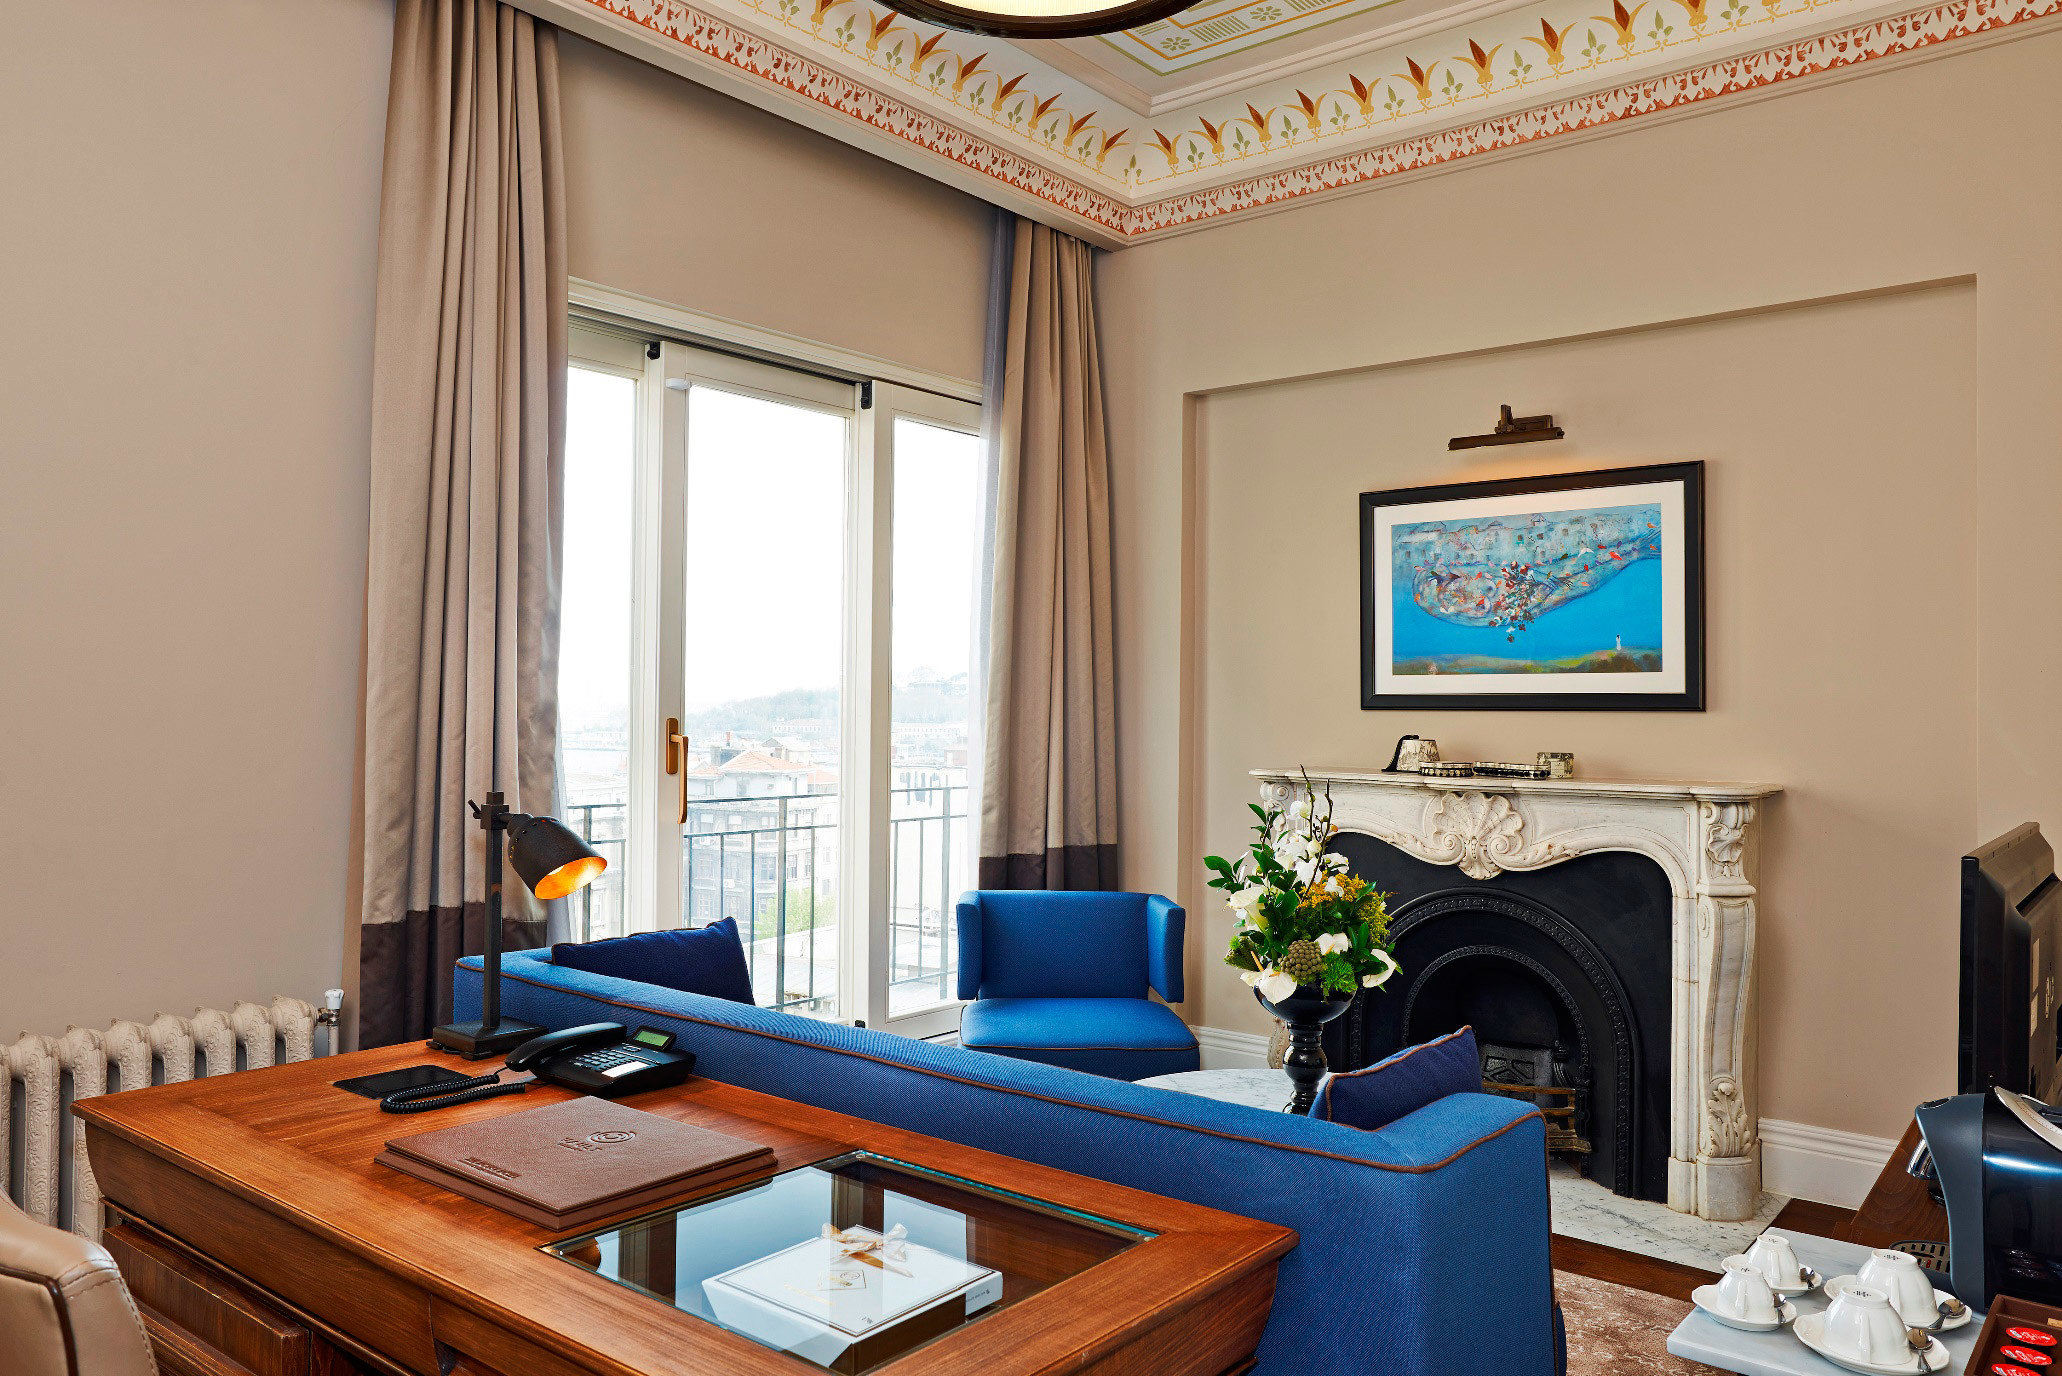 Boutique Hotels Hotels Luxury Travel indoor table wall room living room property Living home estate Suite interior design real estate cottage Villa condominium window window covering apartment furniture